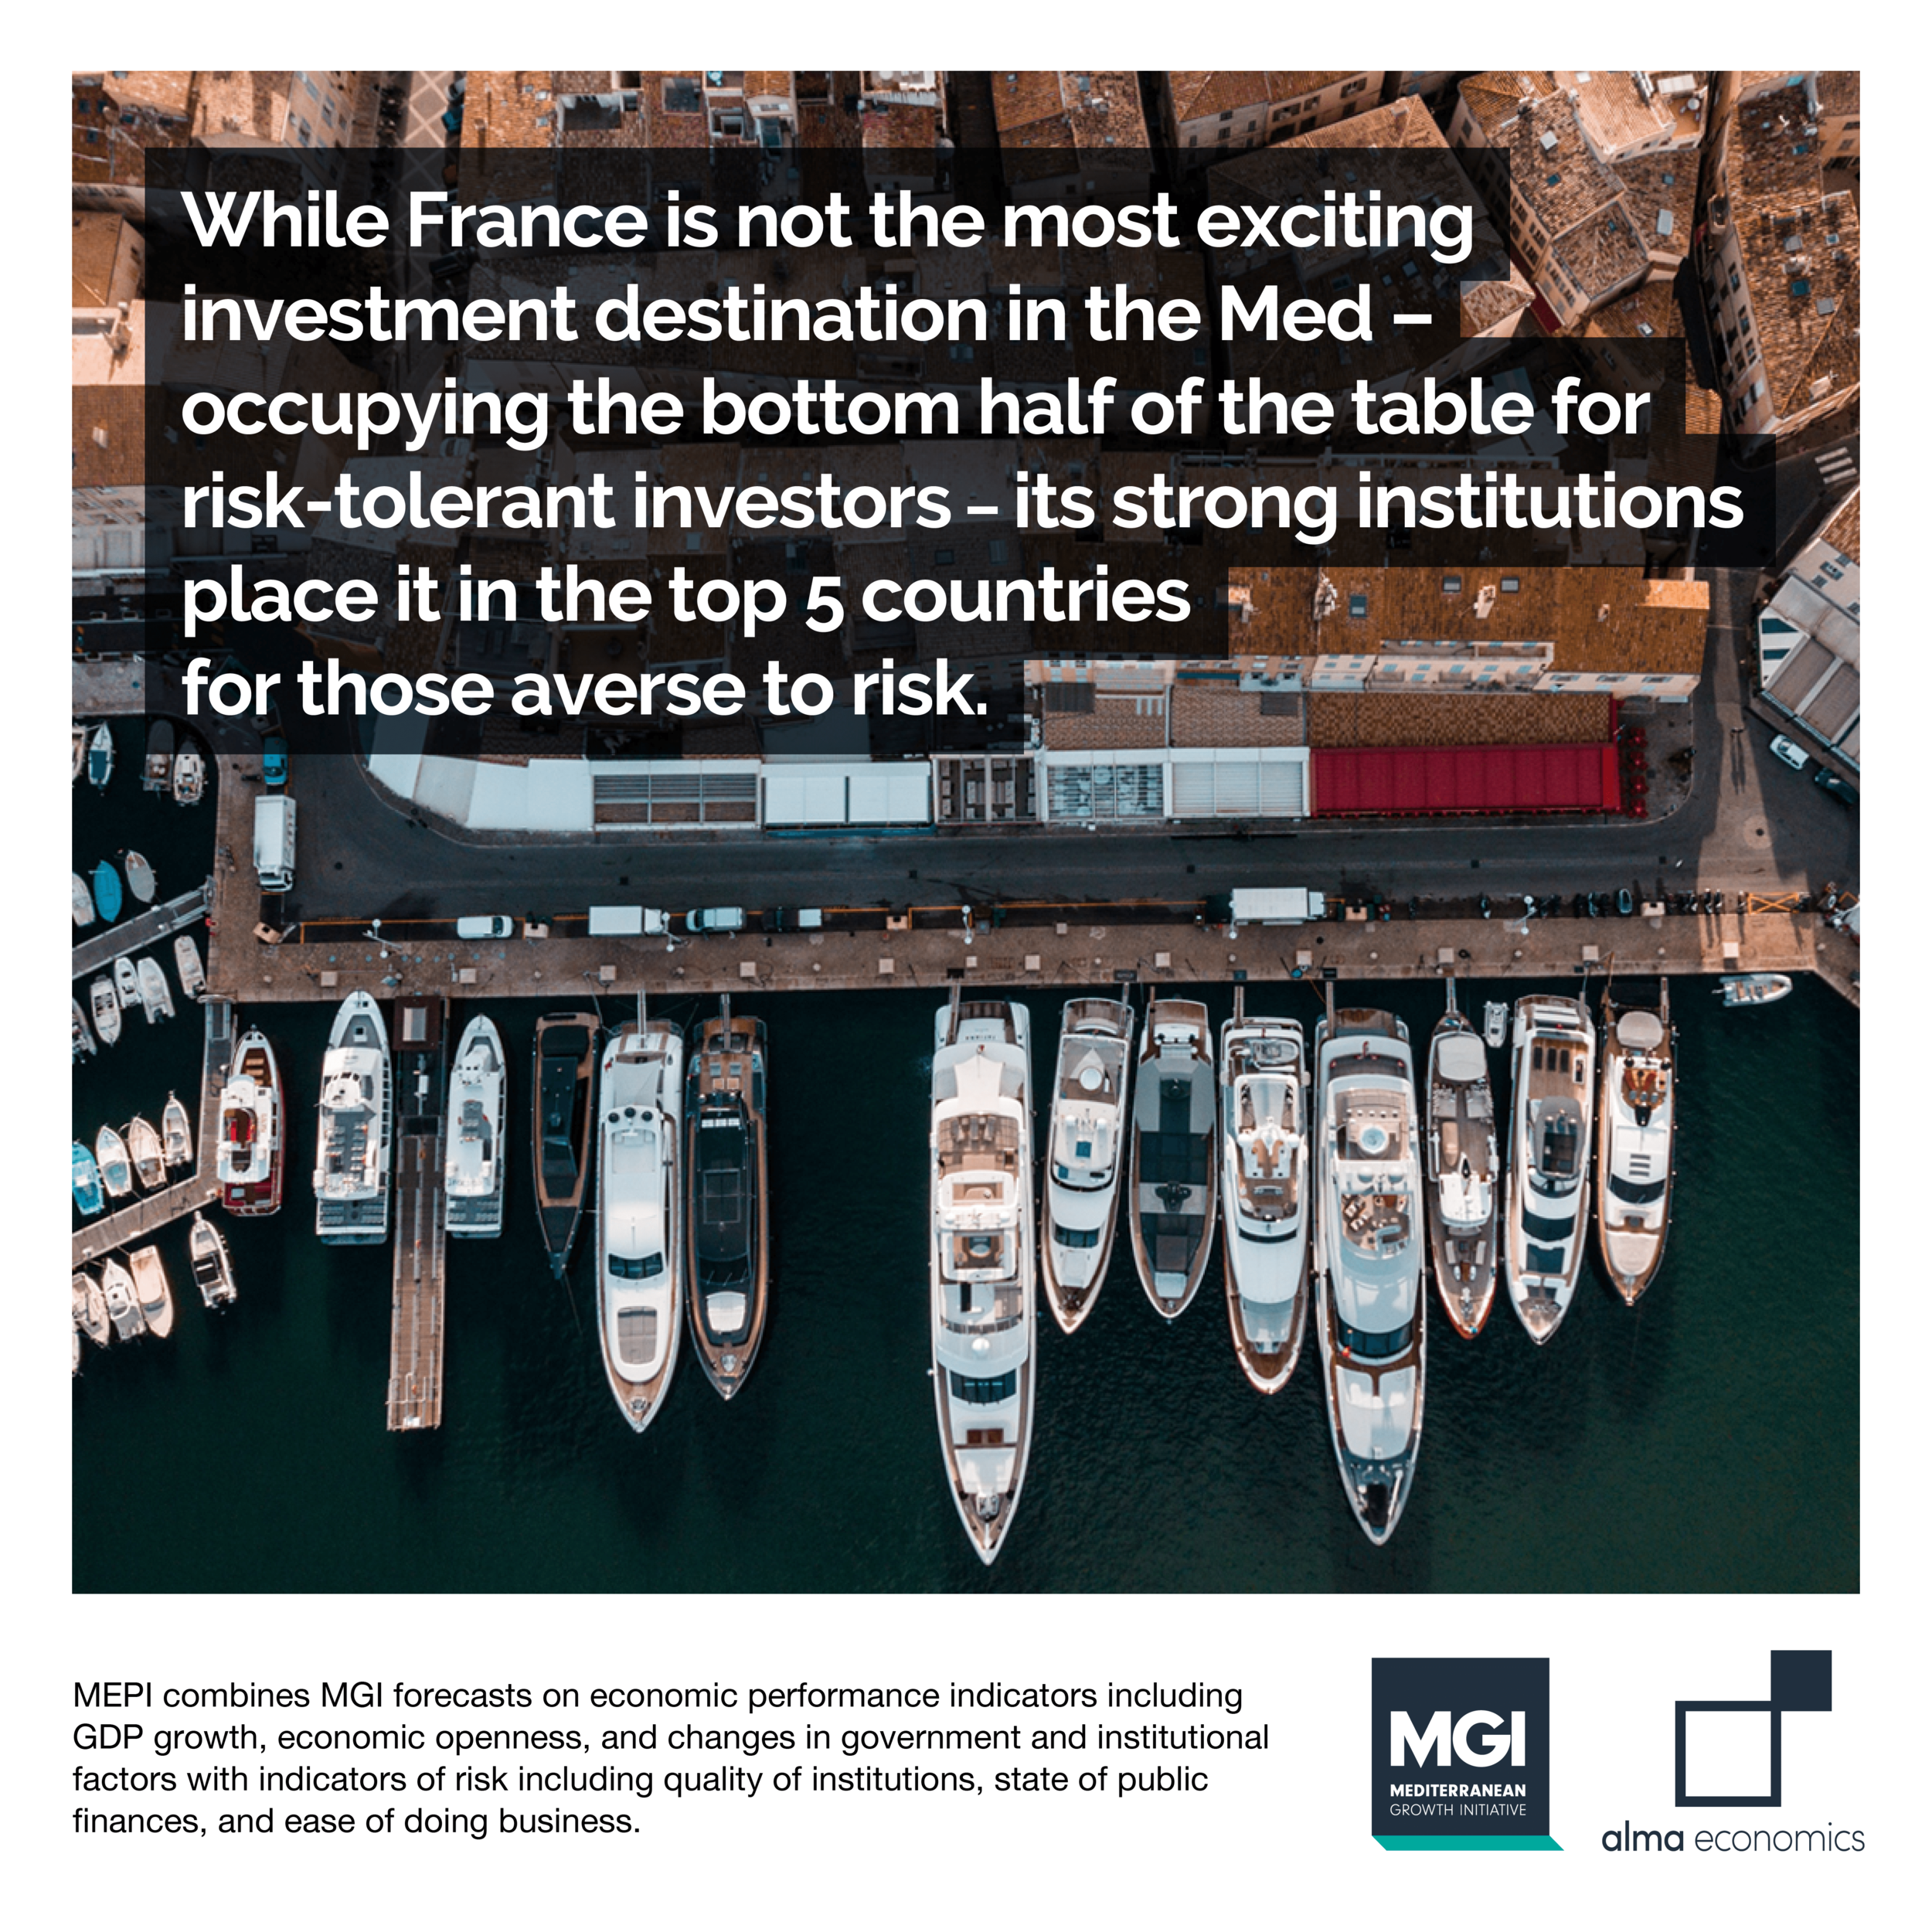 France remains a top country for investors seeking safety -